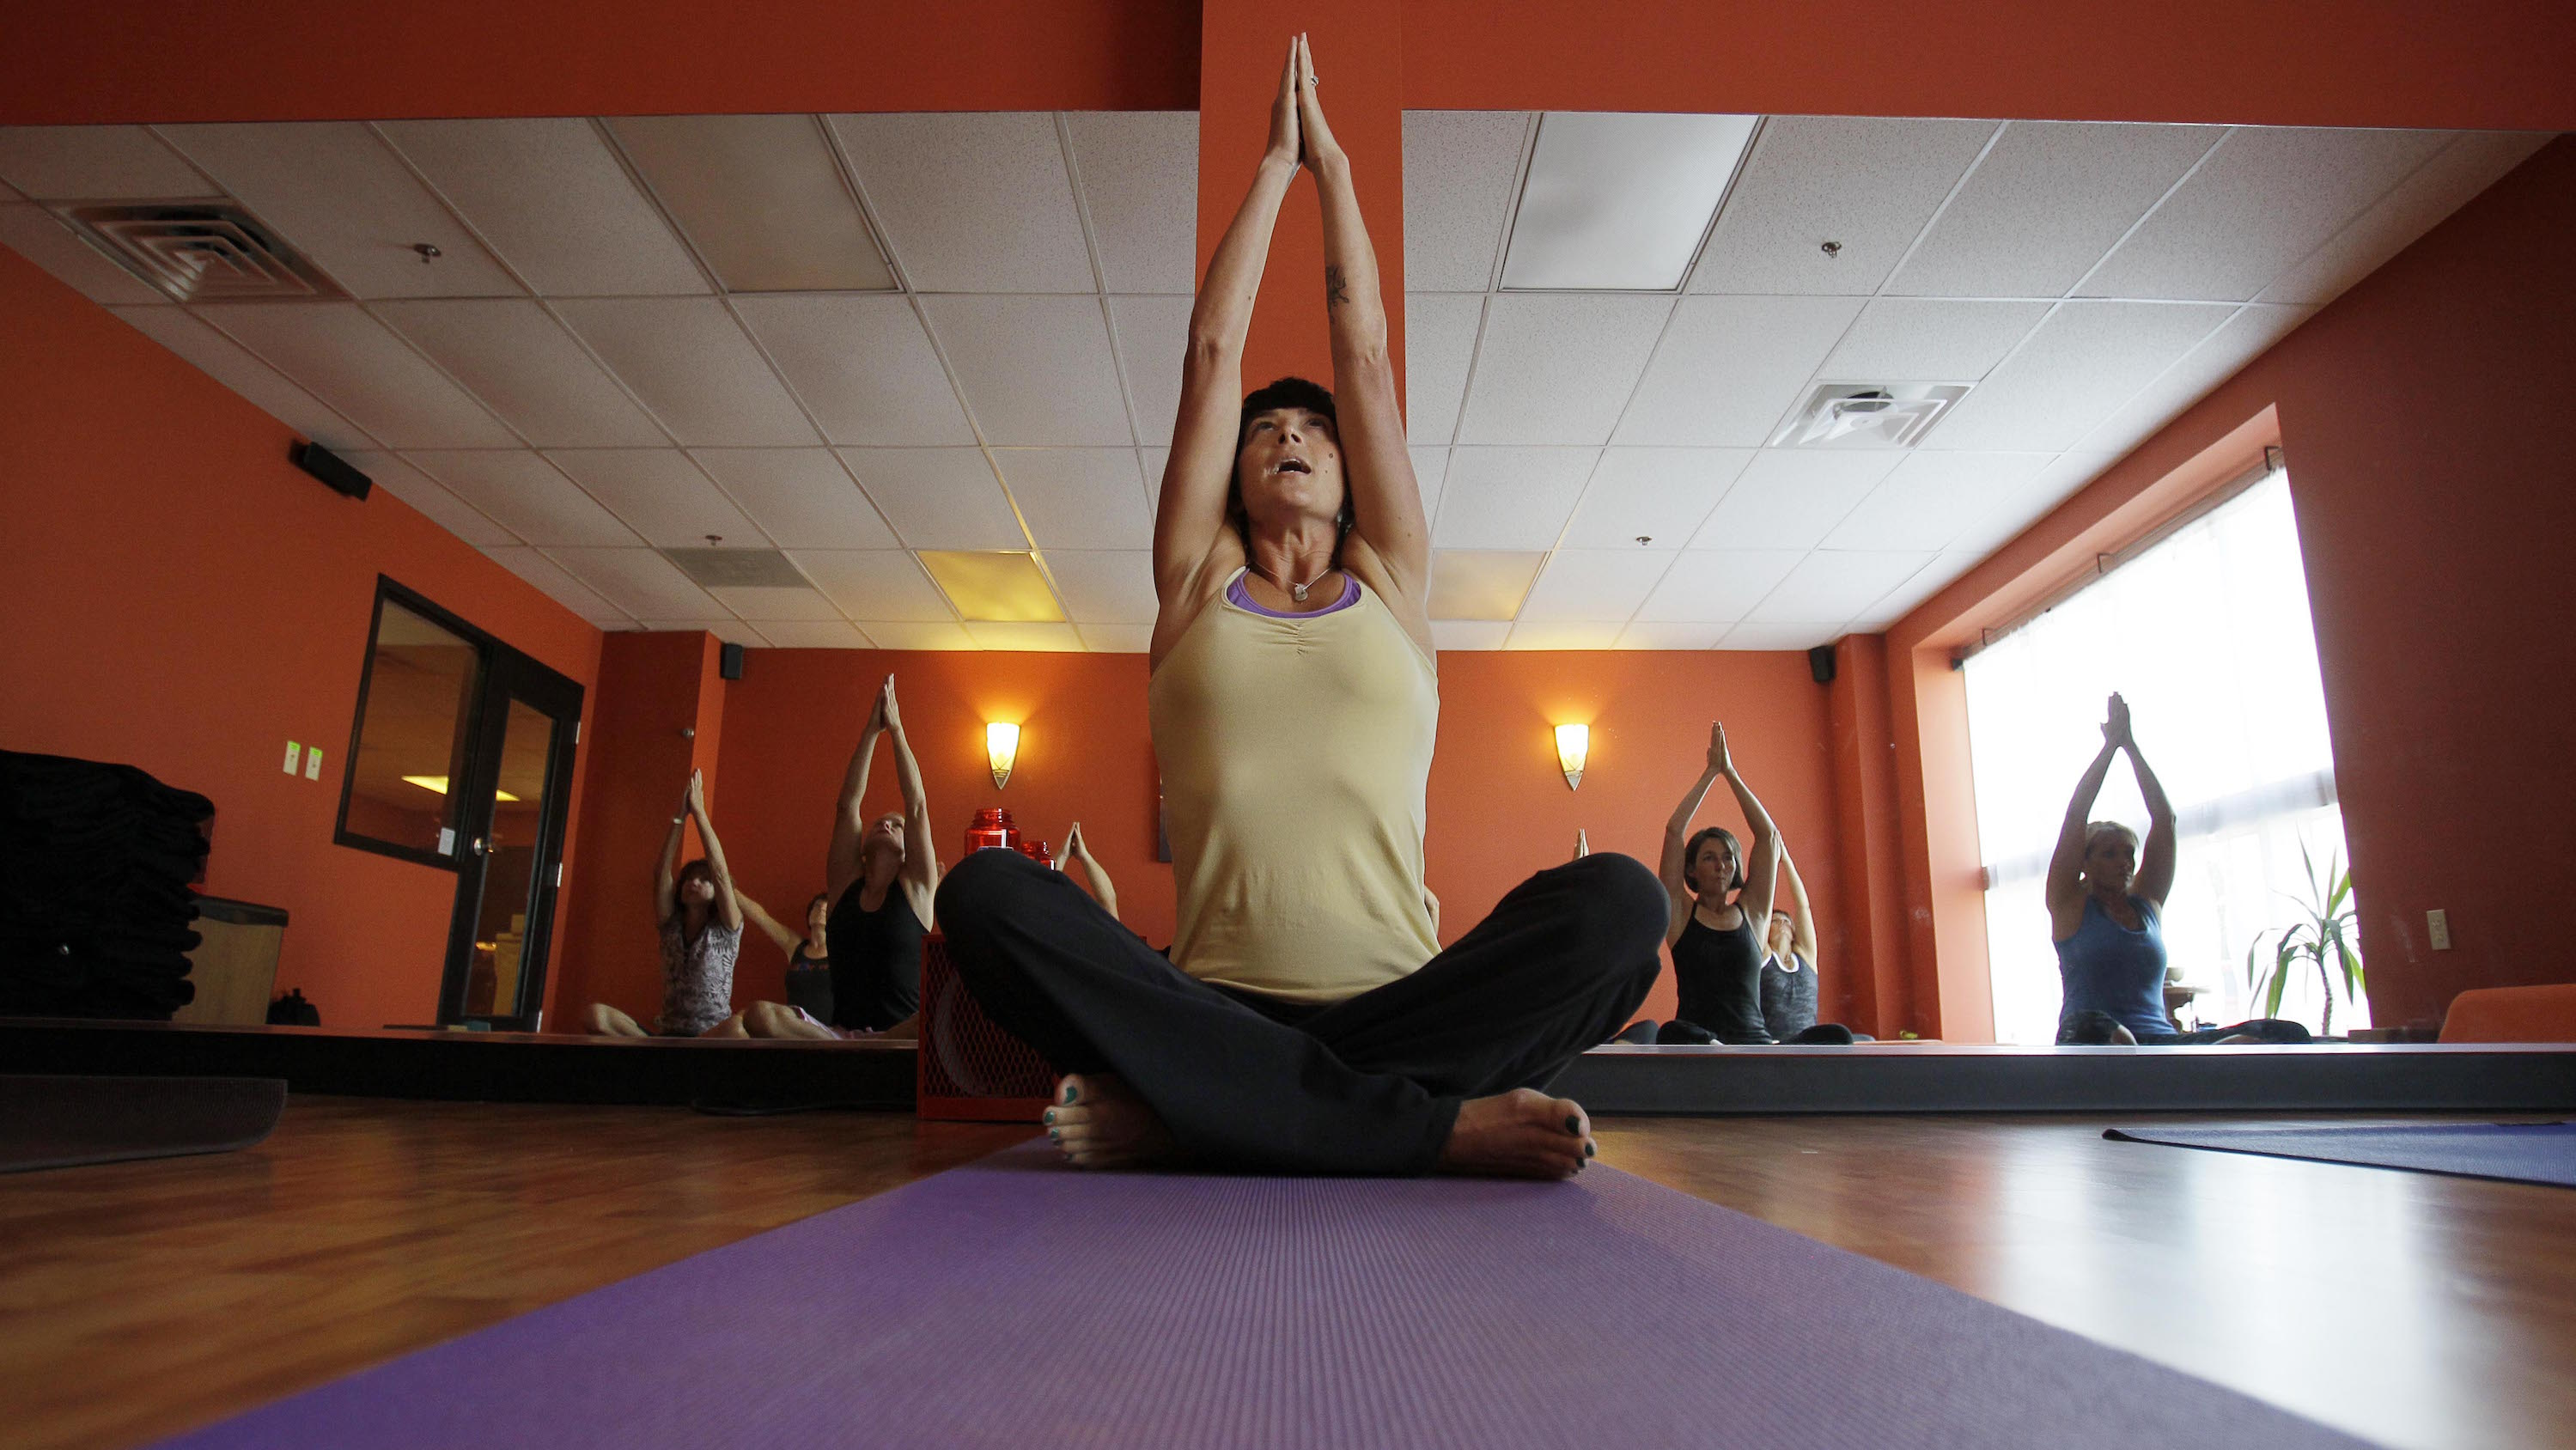 In this Friday, Sept. 24, 2010, photo Stephanie Dillon conducts a yoga class in Louisville, Ky. Dillon's practice of yoga puts her at odds with Southern Baptist Seminary President Albert Mohler who feels it is not a Christian pathway to God. (AP Photo/Ed Reinke)